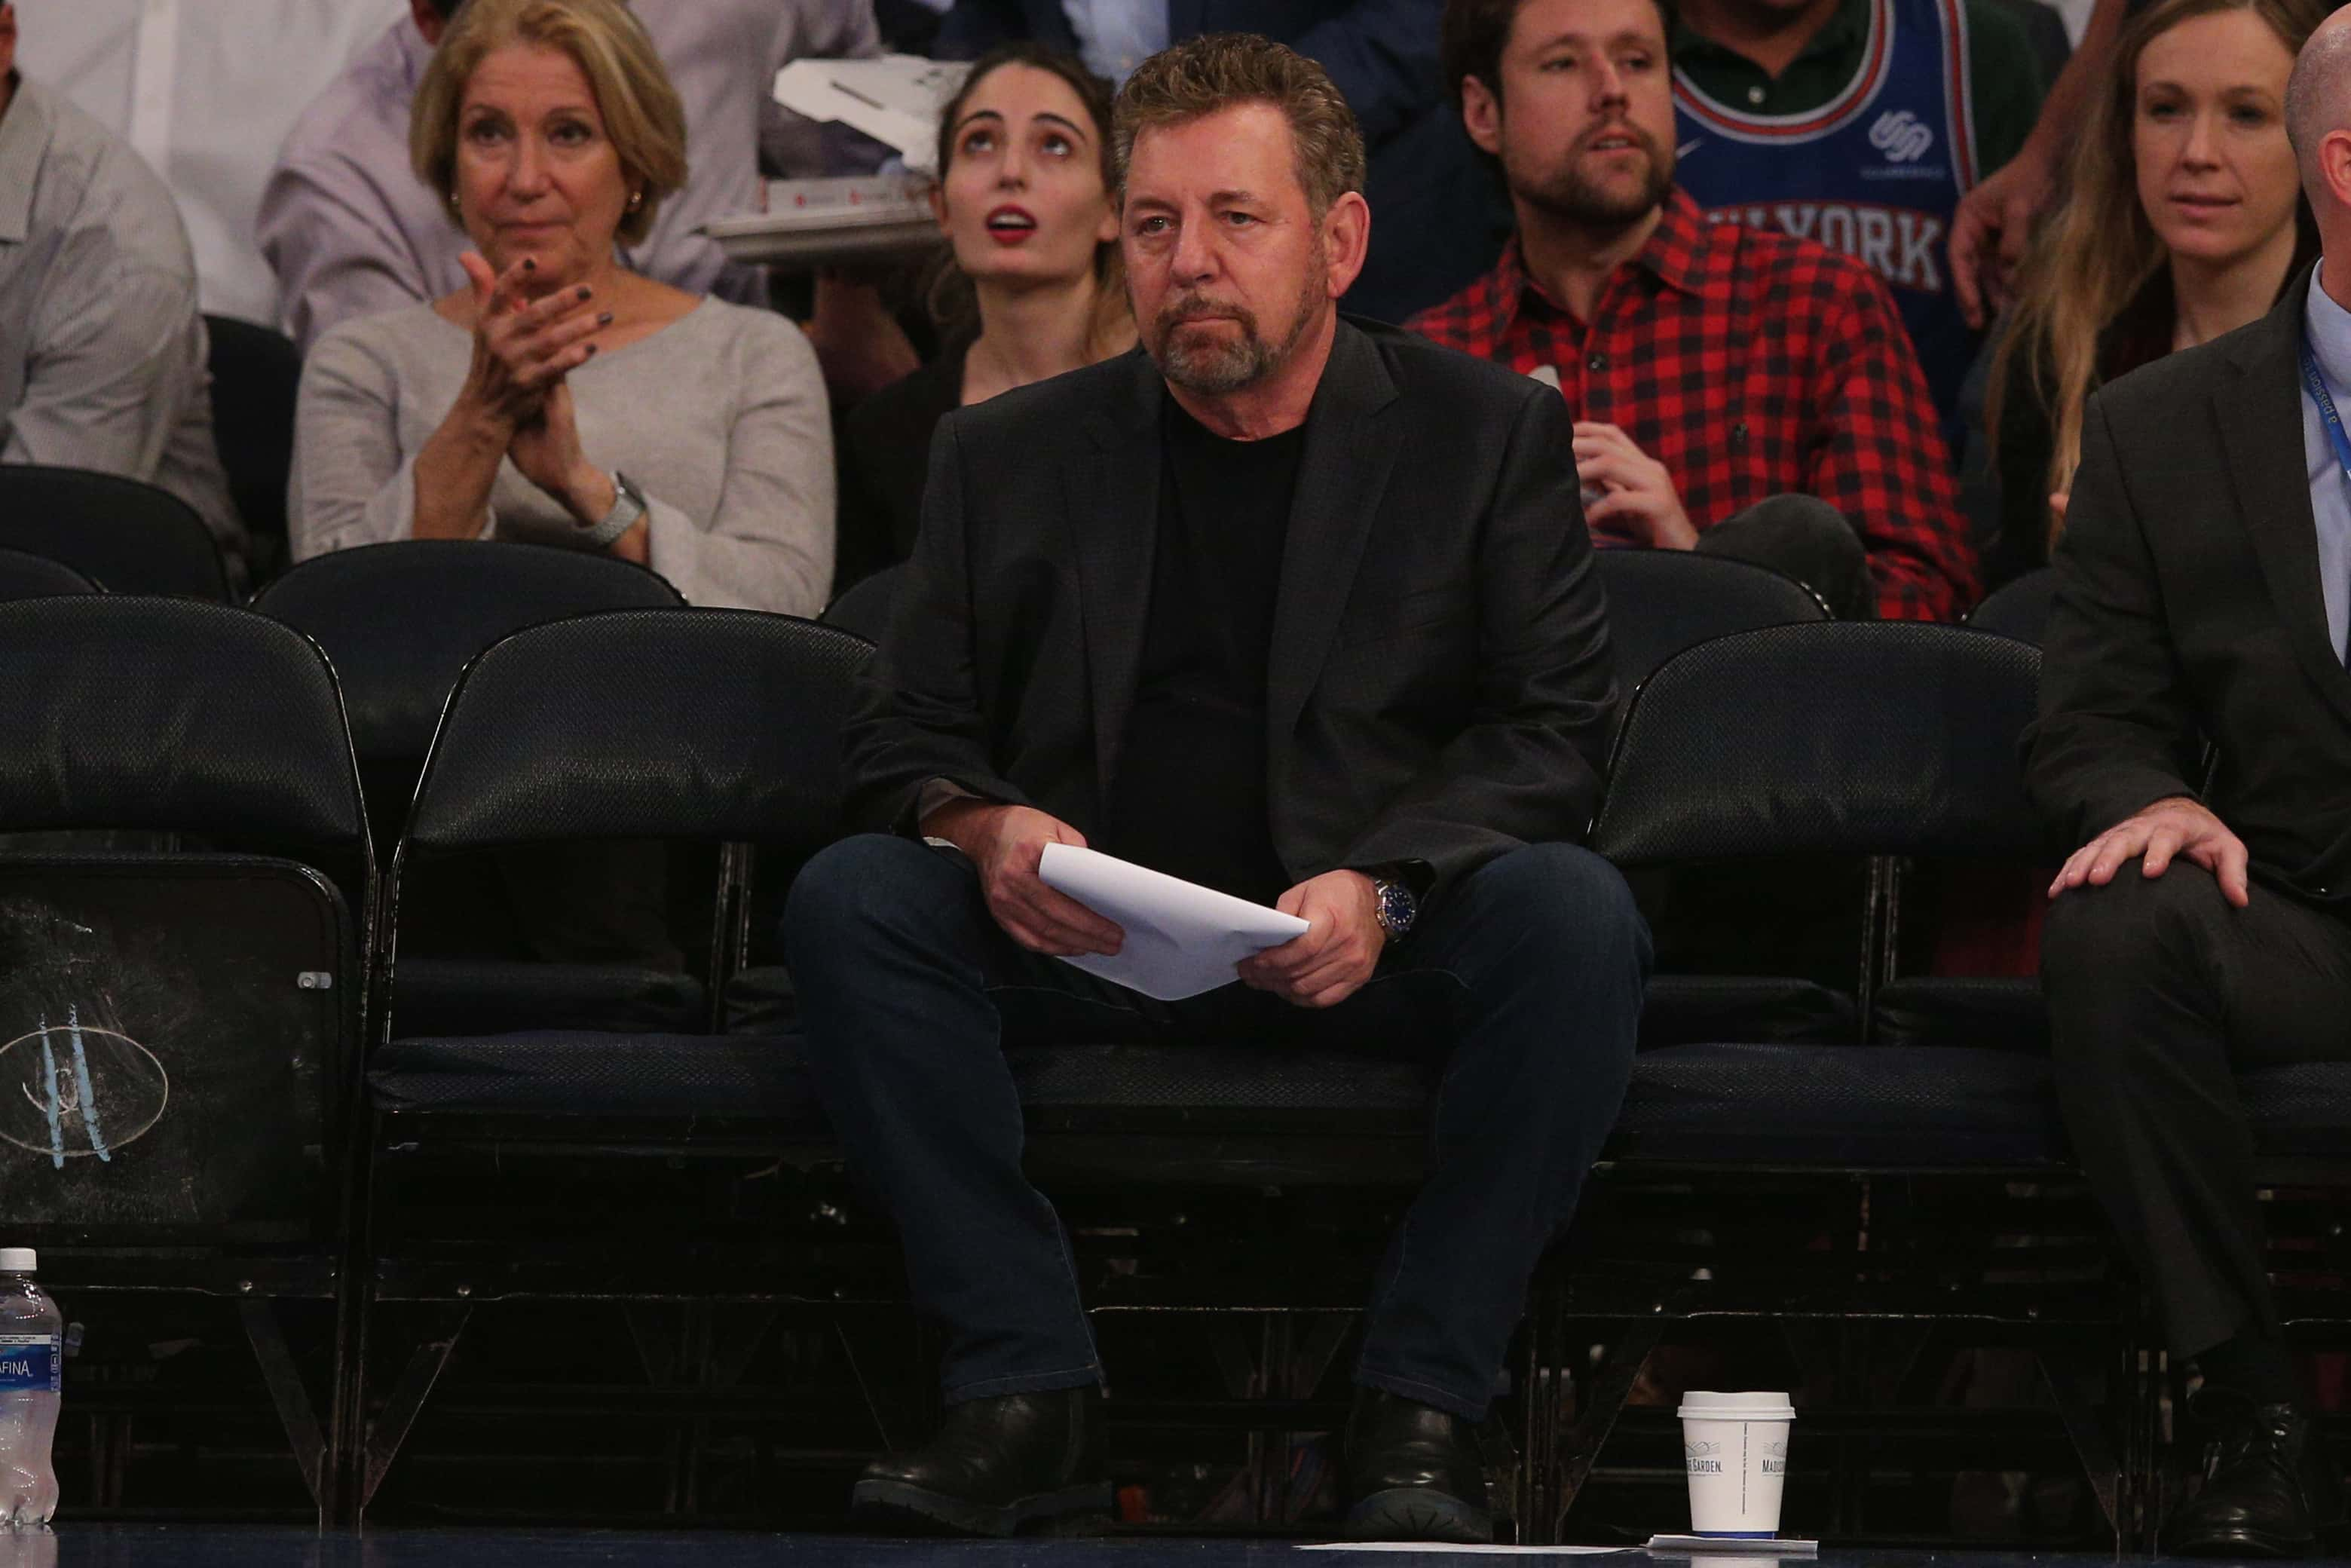 Oct 28, 2019; New York, NY, USA; New York Knicks executive chairman James Dolan watches during the third quarter against the Chicago Bulls at Madison Square Garden. Mandatory Credit: Brad Penner-USA TODAY Sports